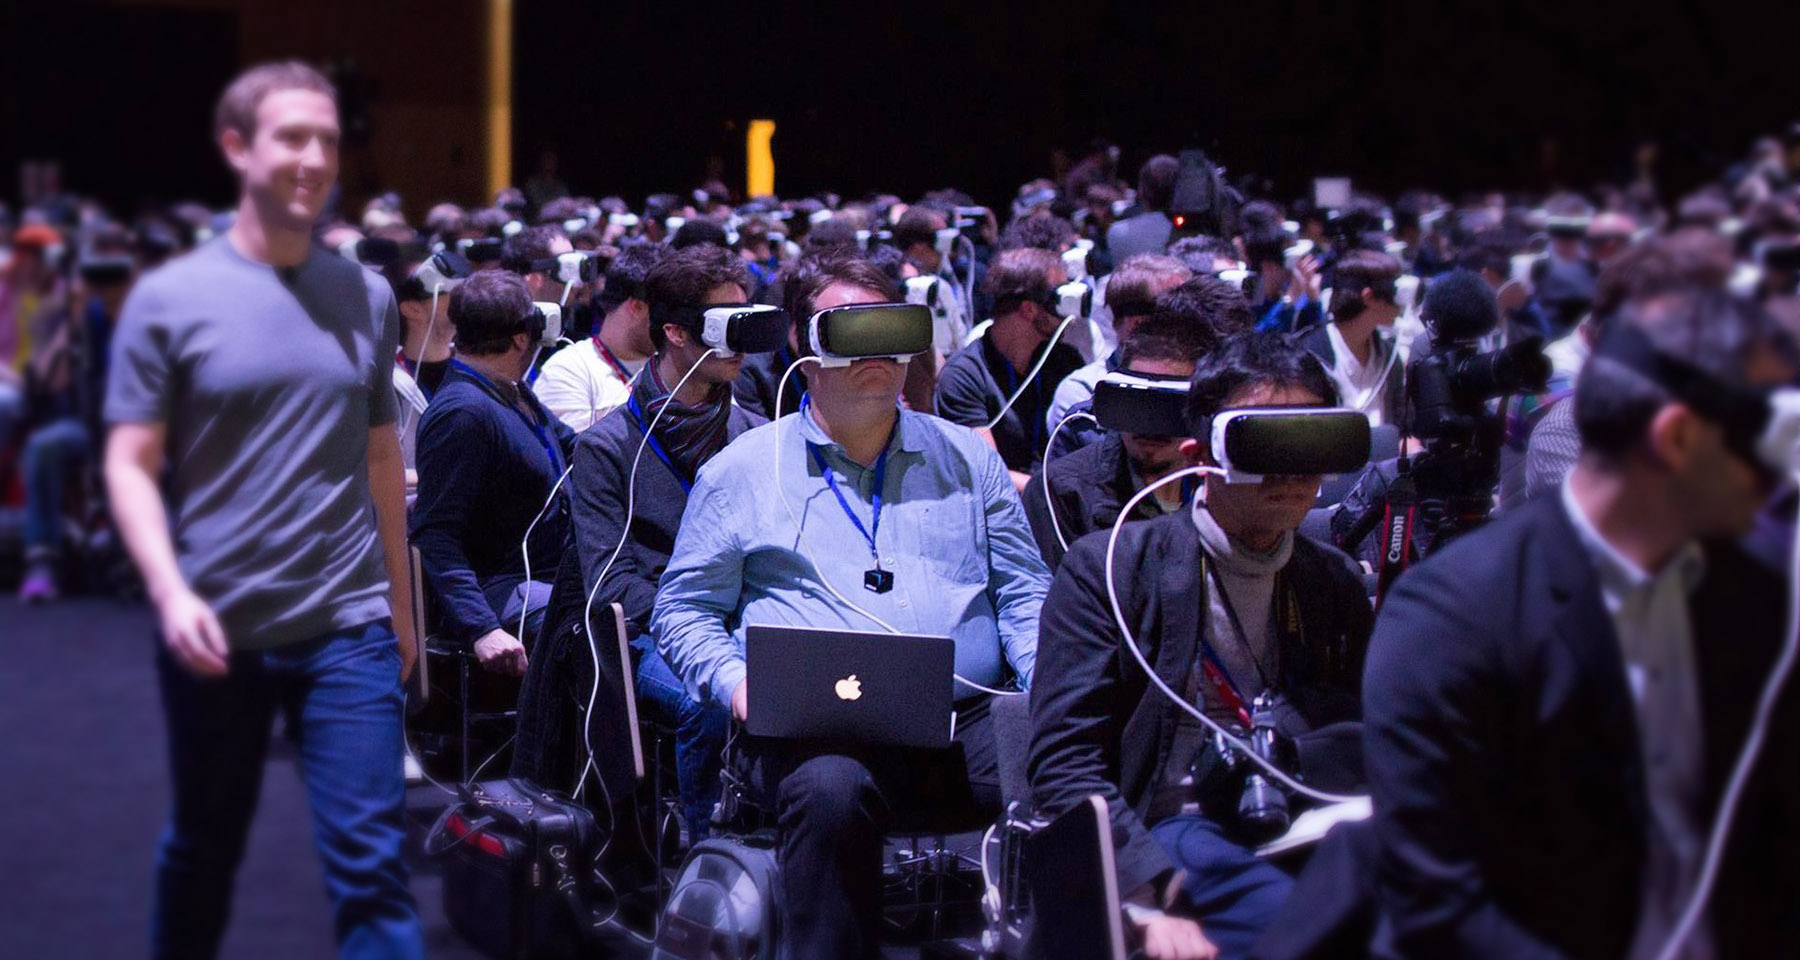 Virtual reality highlighted at Mobile World Congress